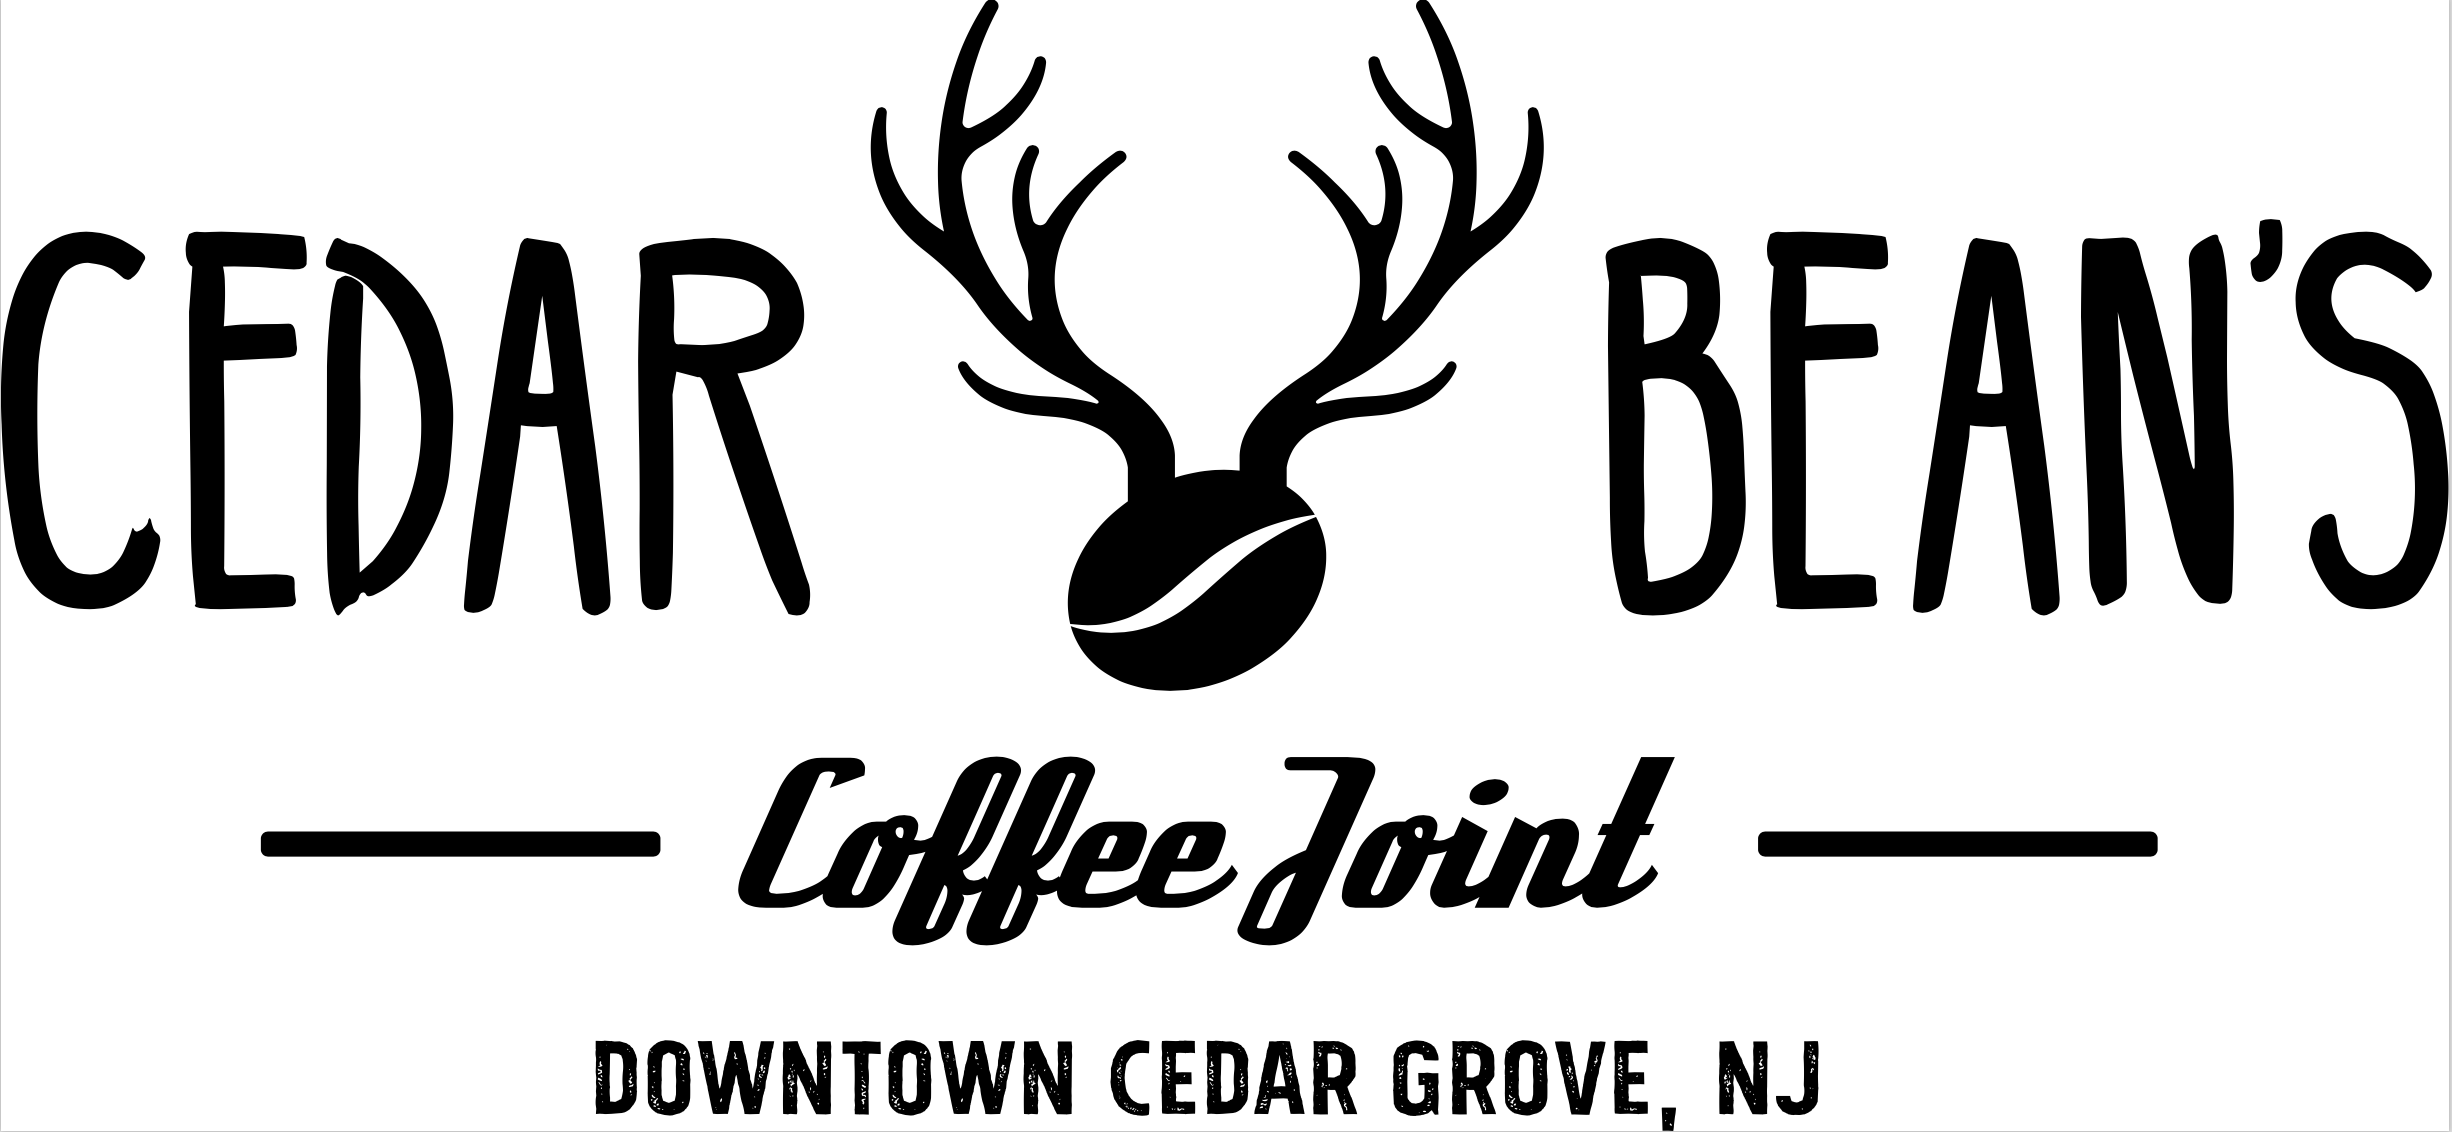 Cedar Bean's Coffee Joint, at 575 Pompton Avenue in Cedar Grove's downtown district is a spectacular small-batch coffee shop with freshly roasted, unique third-wave artisan coffee beans, triple-filtered nitro cold brews, as well as teas & drinks. Reclaimed wood accents and concrete countertops recall a vintage explorer's club or hunting lodge. We serve a selection of breakfast, lunches and snacks.